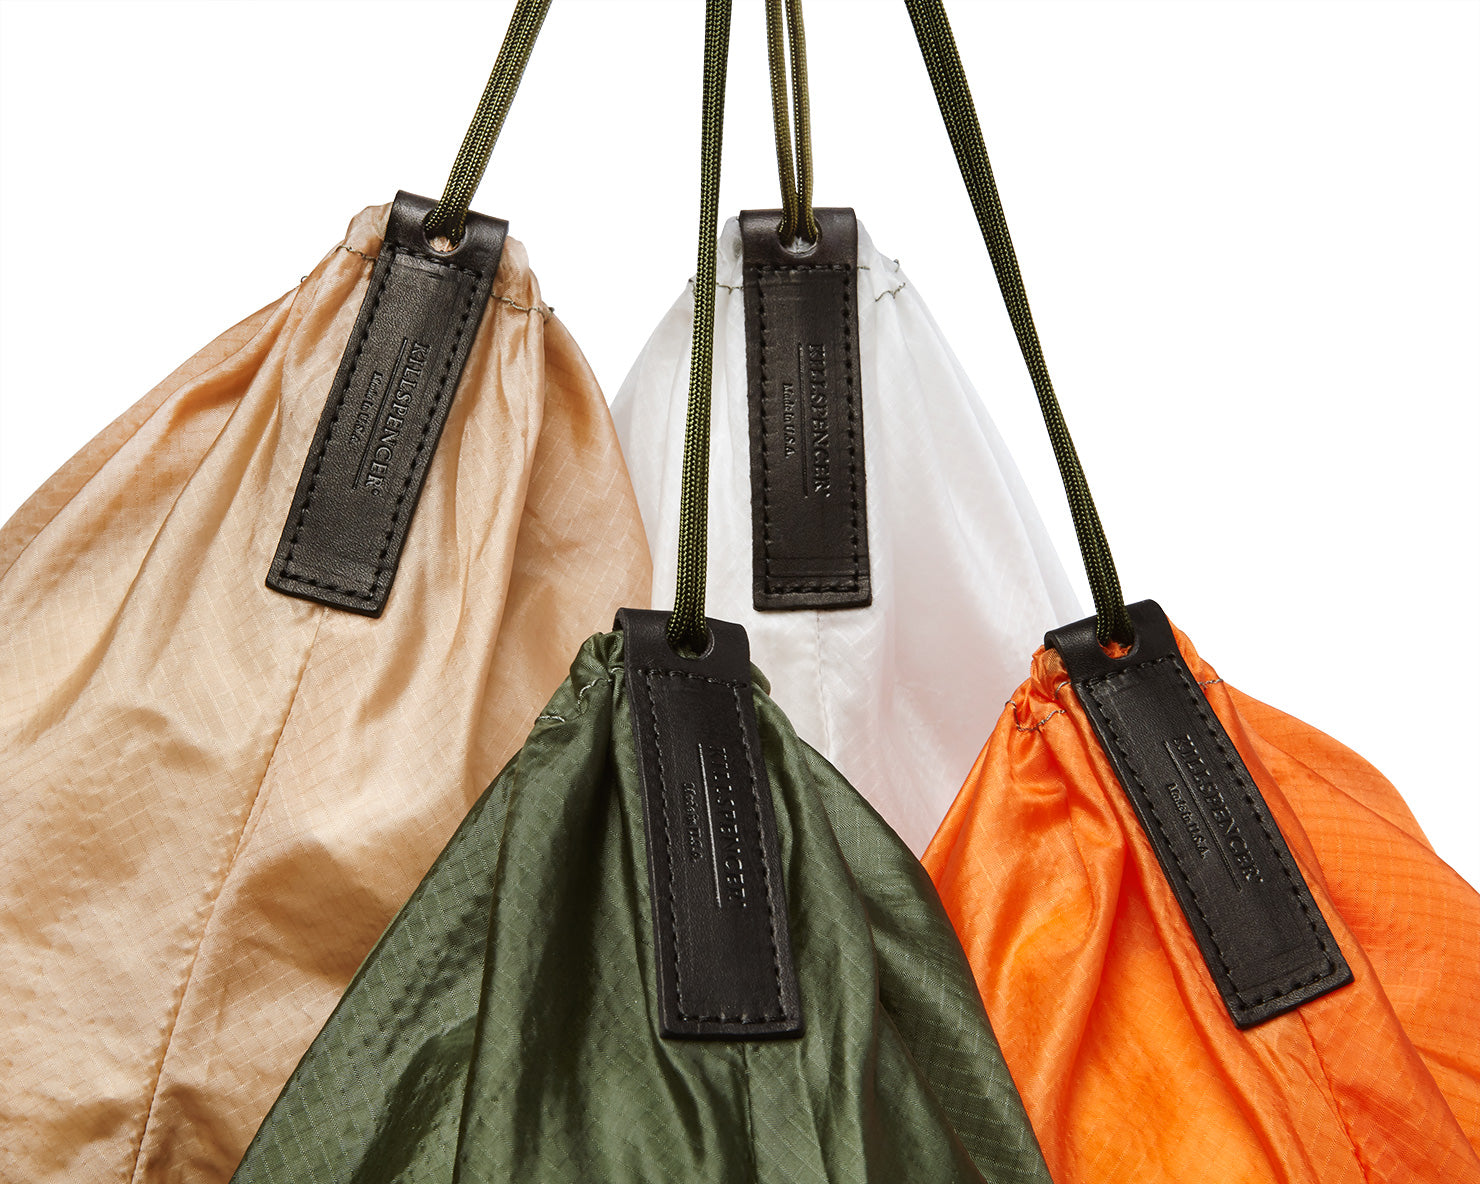 PARACHUTE BAG 2.0 - Laundry Bag | KILLSPENCER® - Orange Parachute